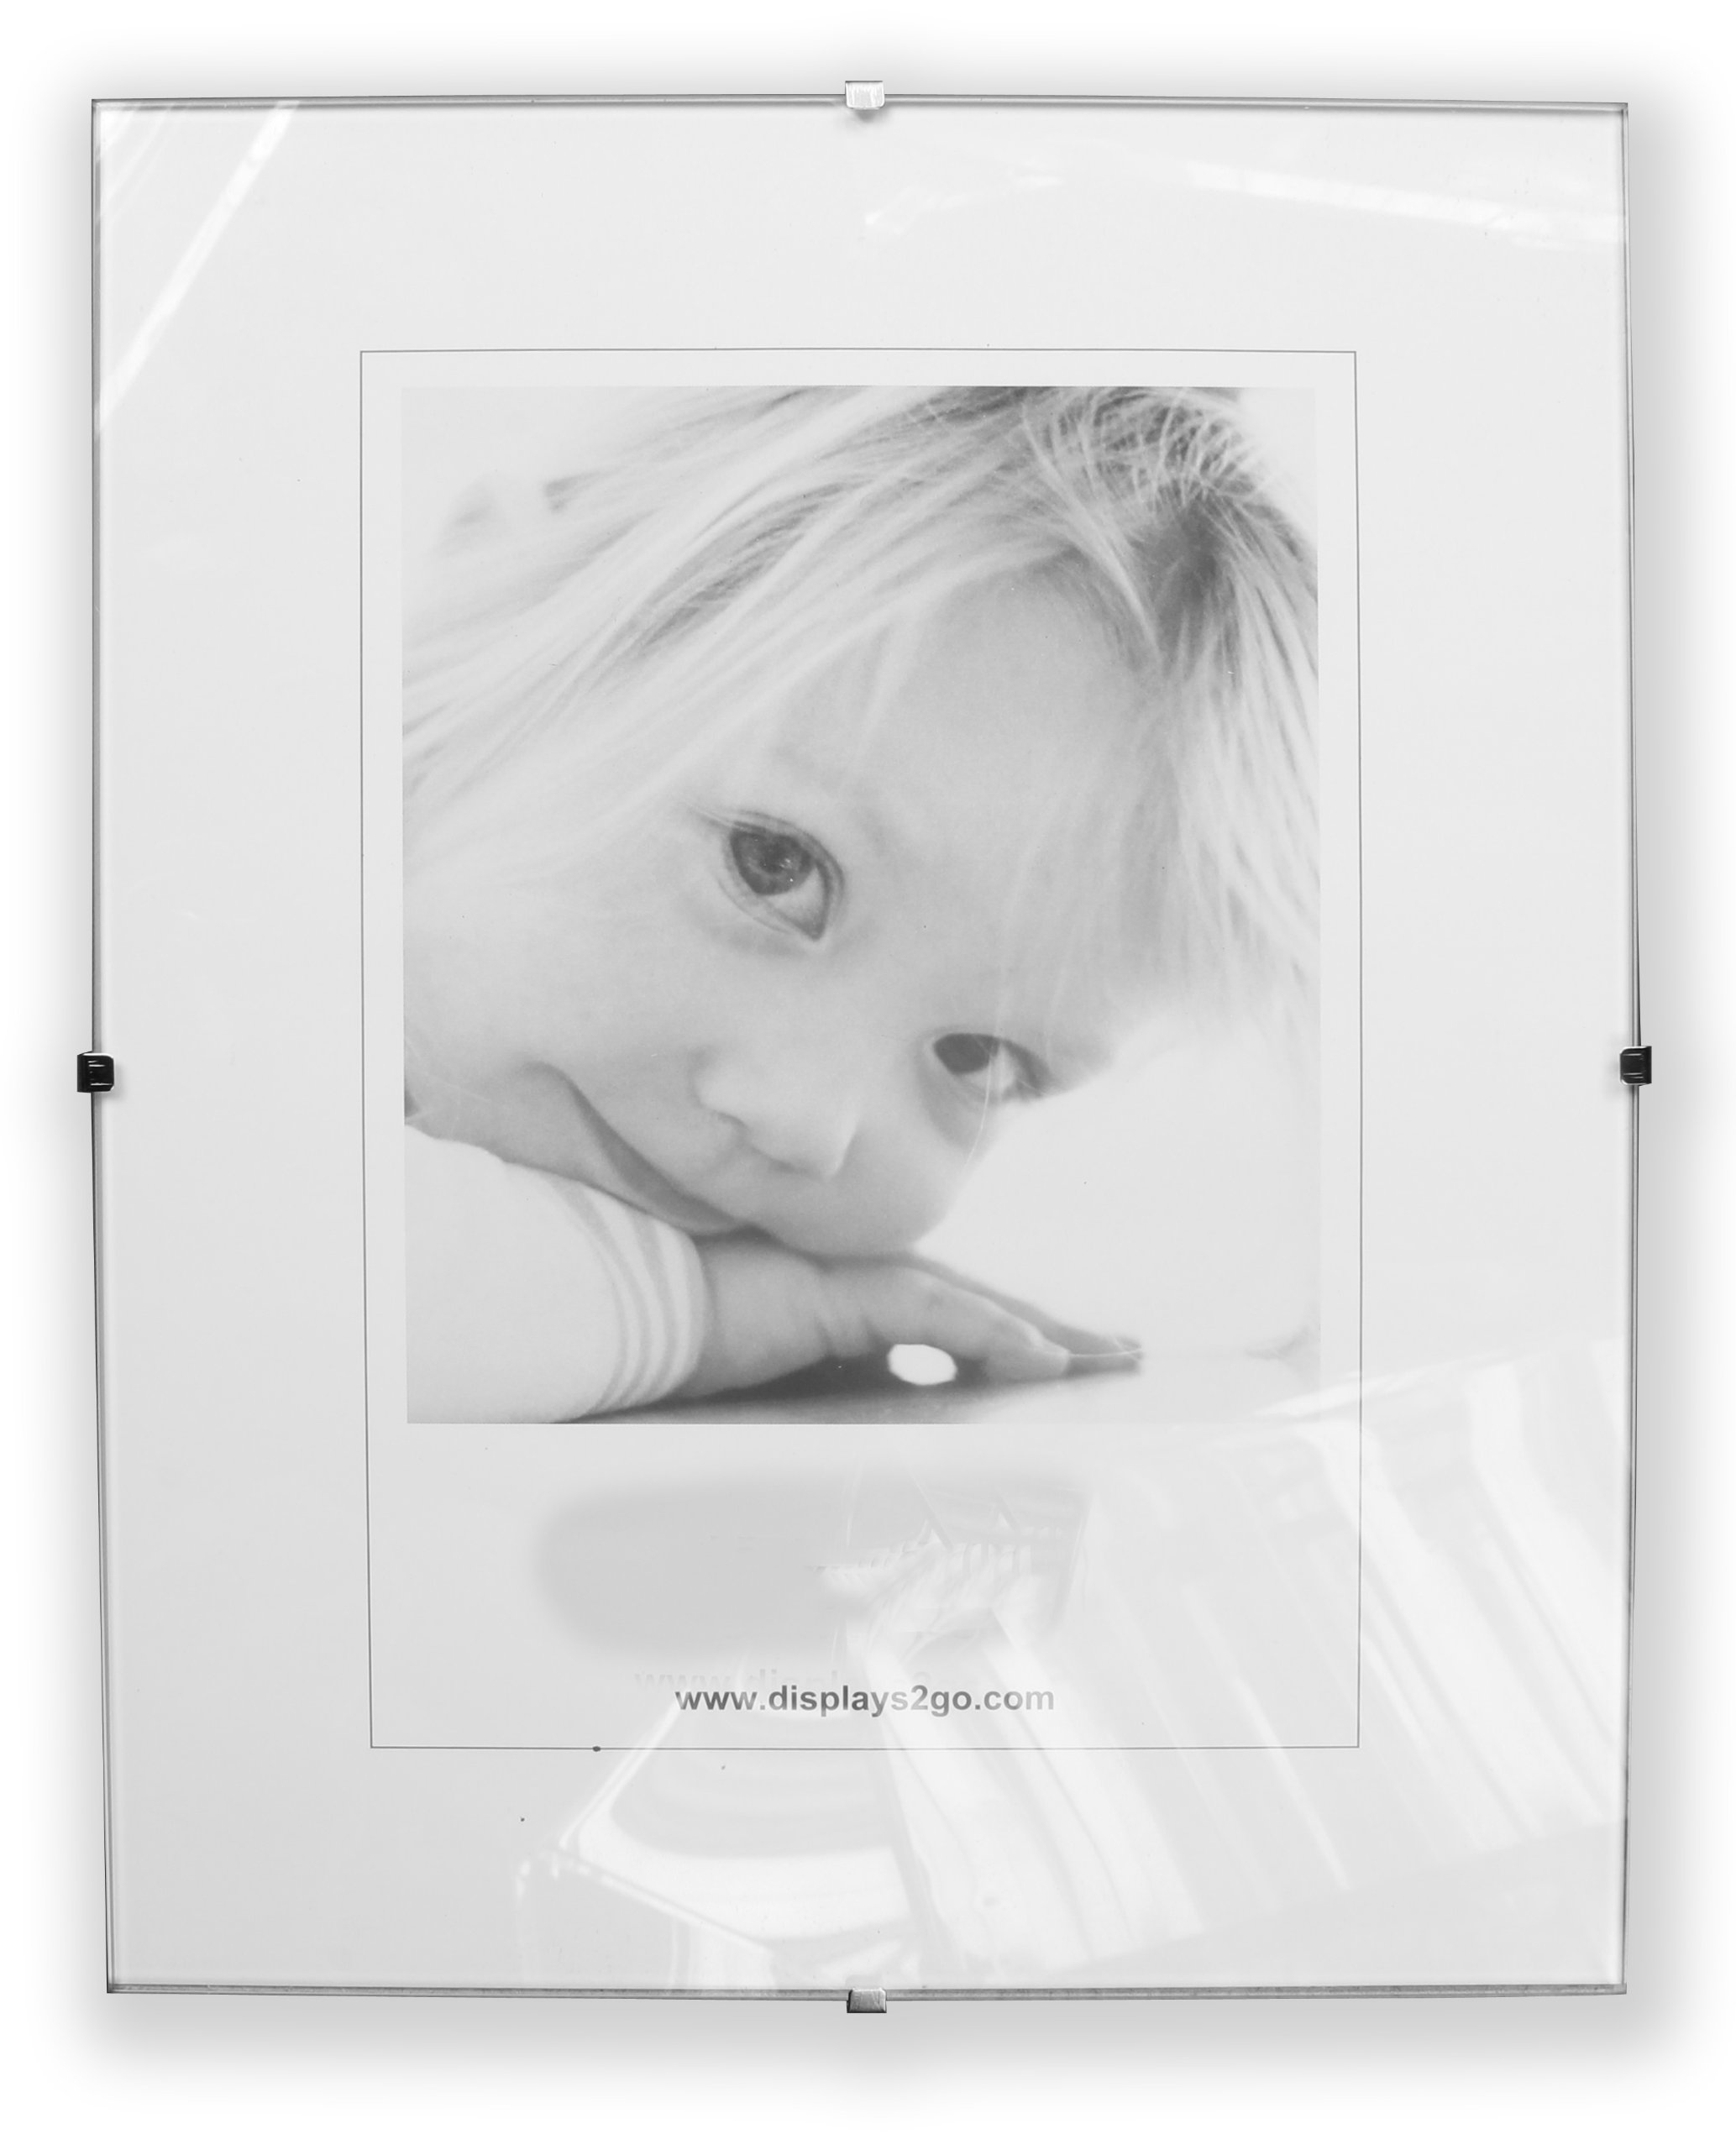 Displays2go Clip Frame with Tempered Glass and Frameless Design, 15.75 by 19.75-Inch by Displays2go